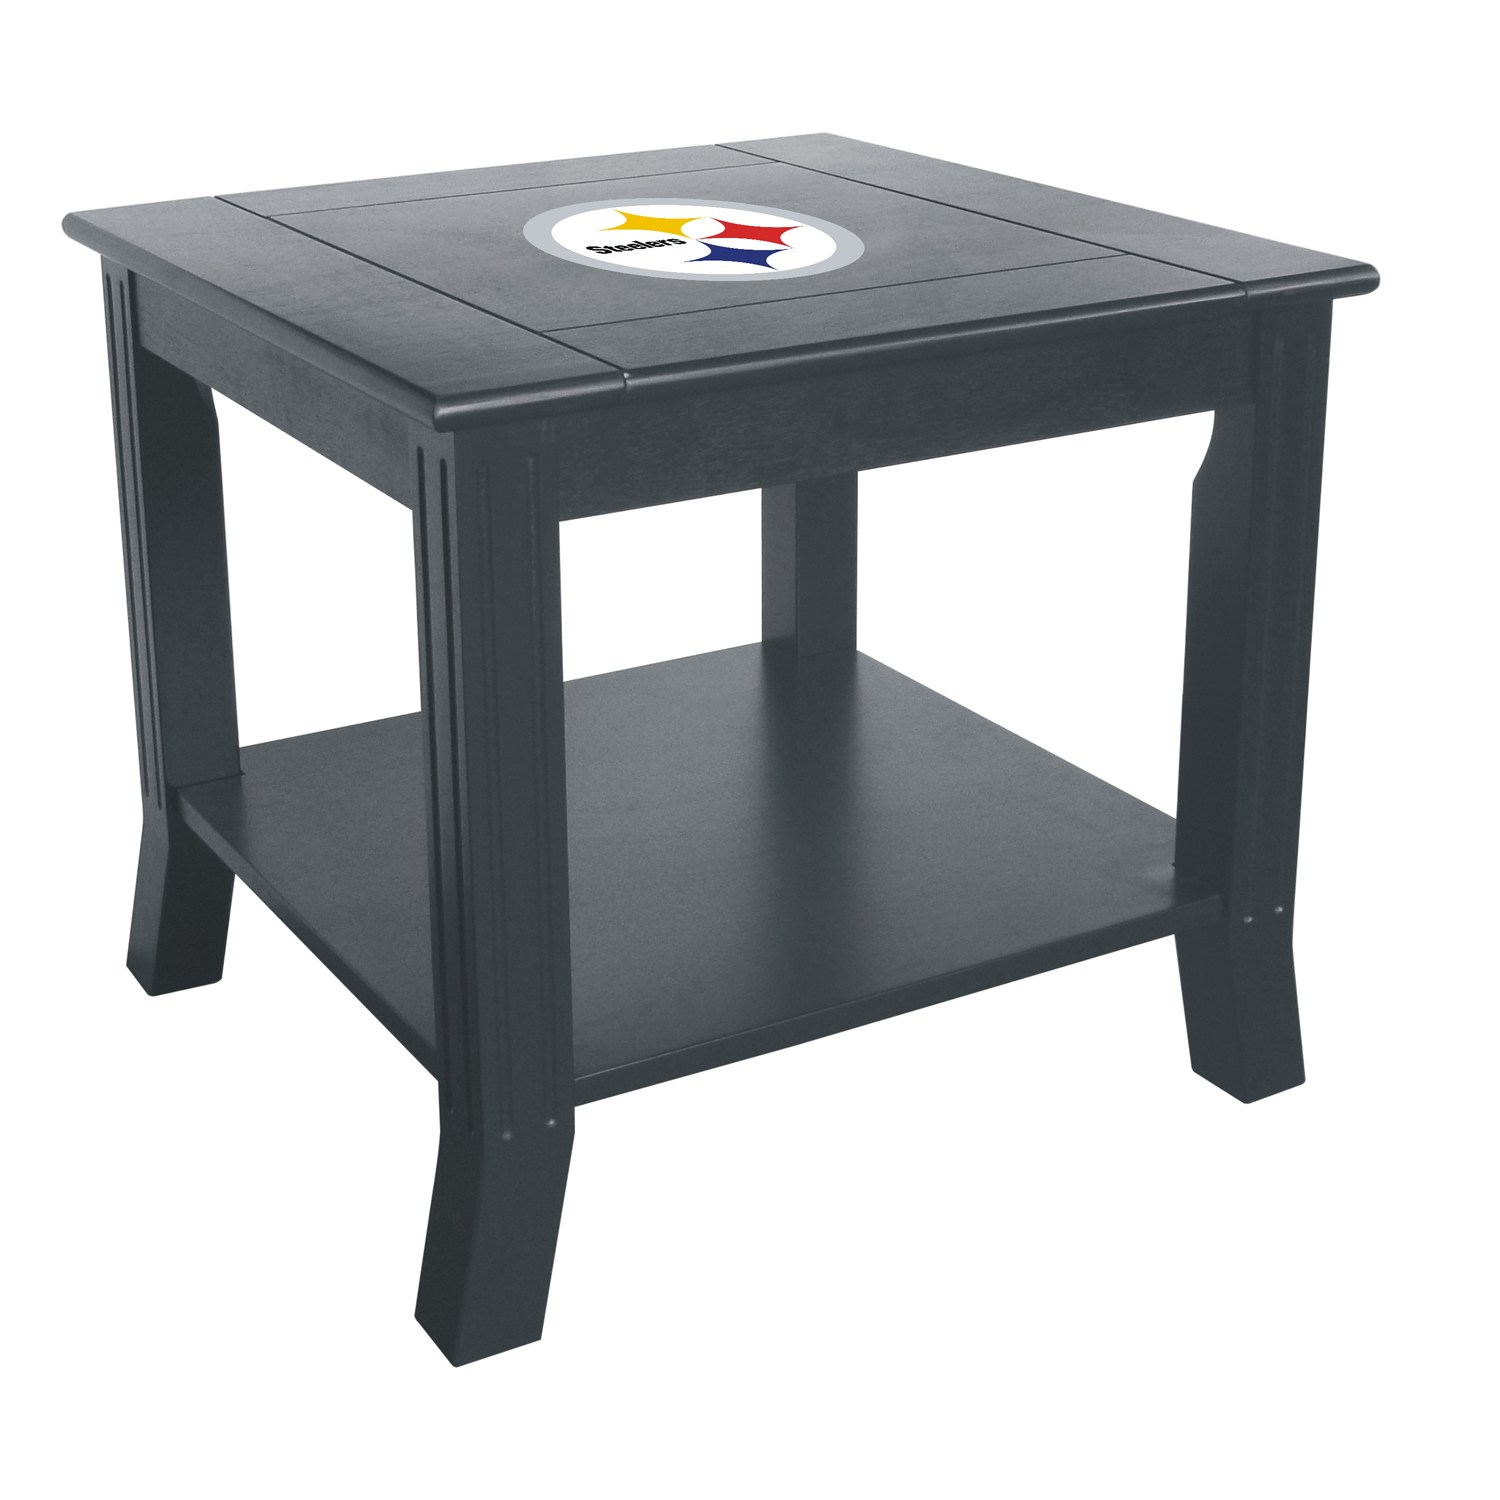 side tables kohls kitchen and living space interior mosaic accent table pittsburgh steelers bedside rustic target vases vienna furniture narrow small nightstand diy granite